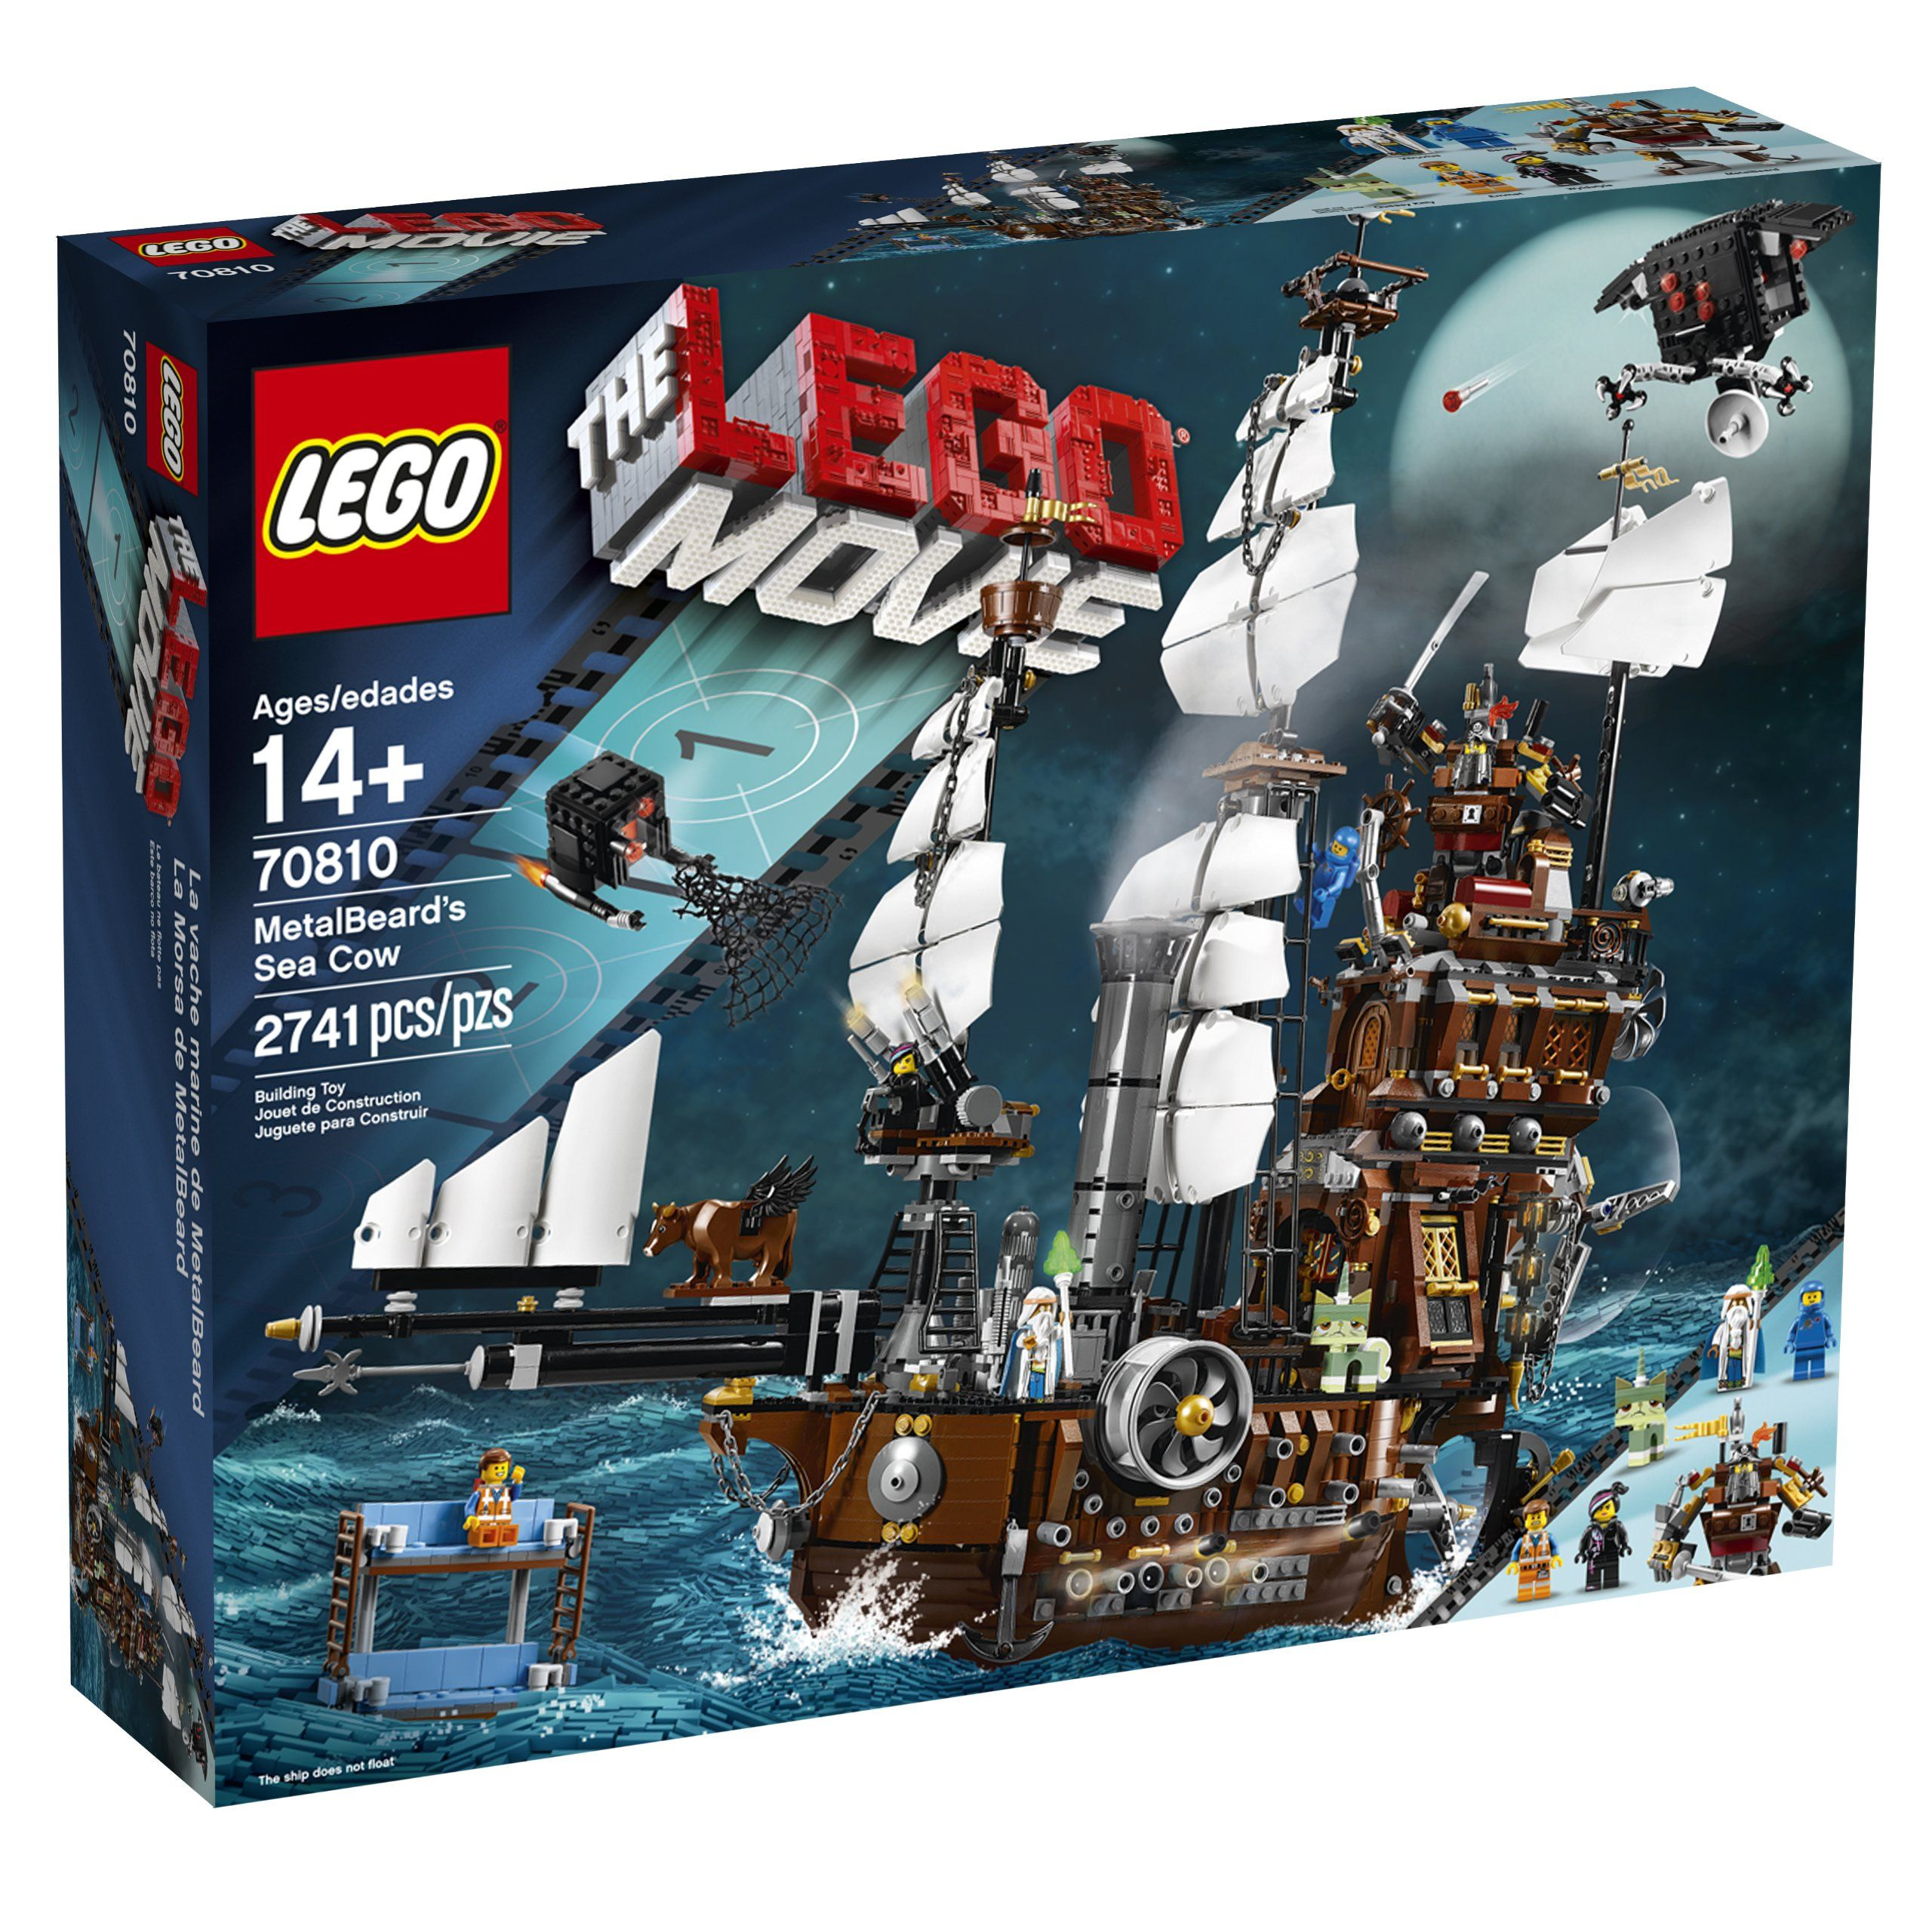 Amazon.com: LEGO Movie 70810 Metal Beard's Sea Cow: Toys & Games